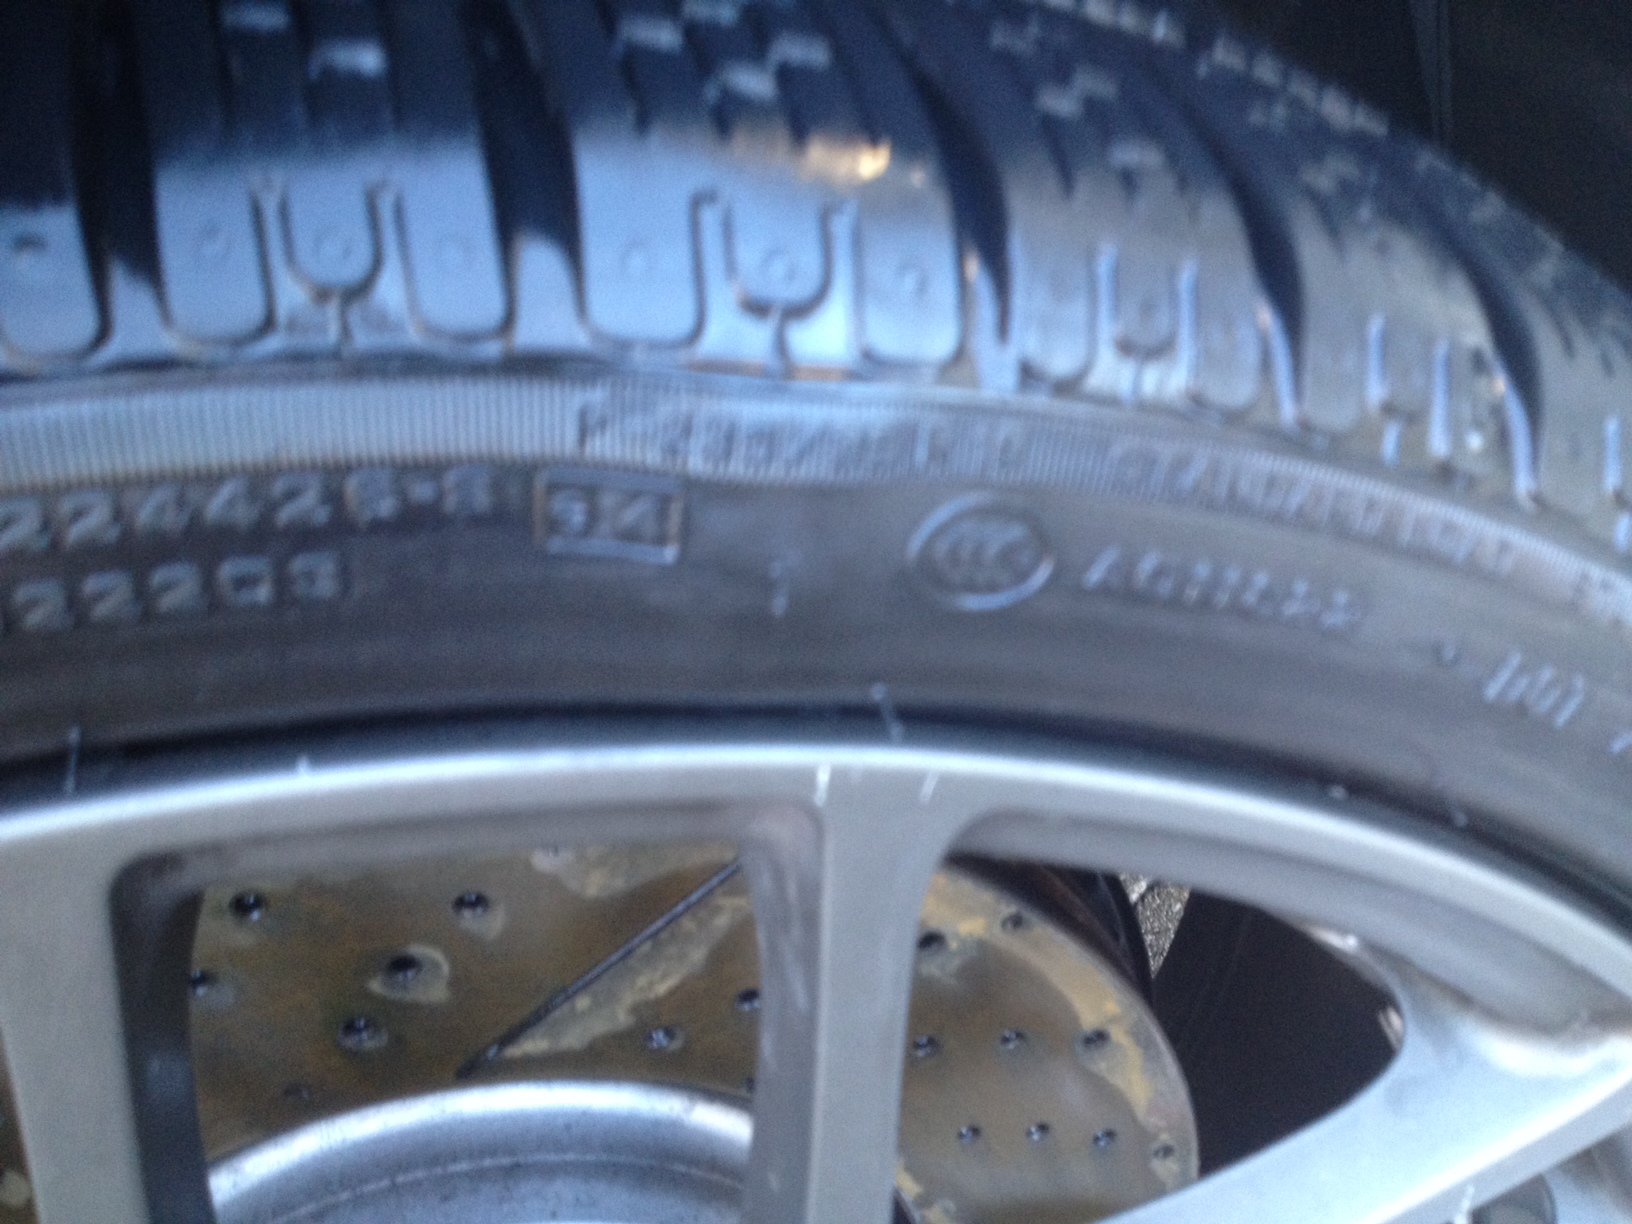 Defective run-flat - a bubble formed on the outside r/f tire on sidewall